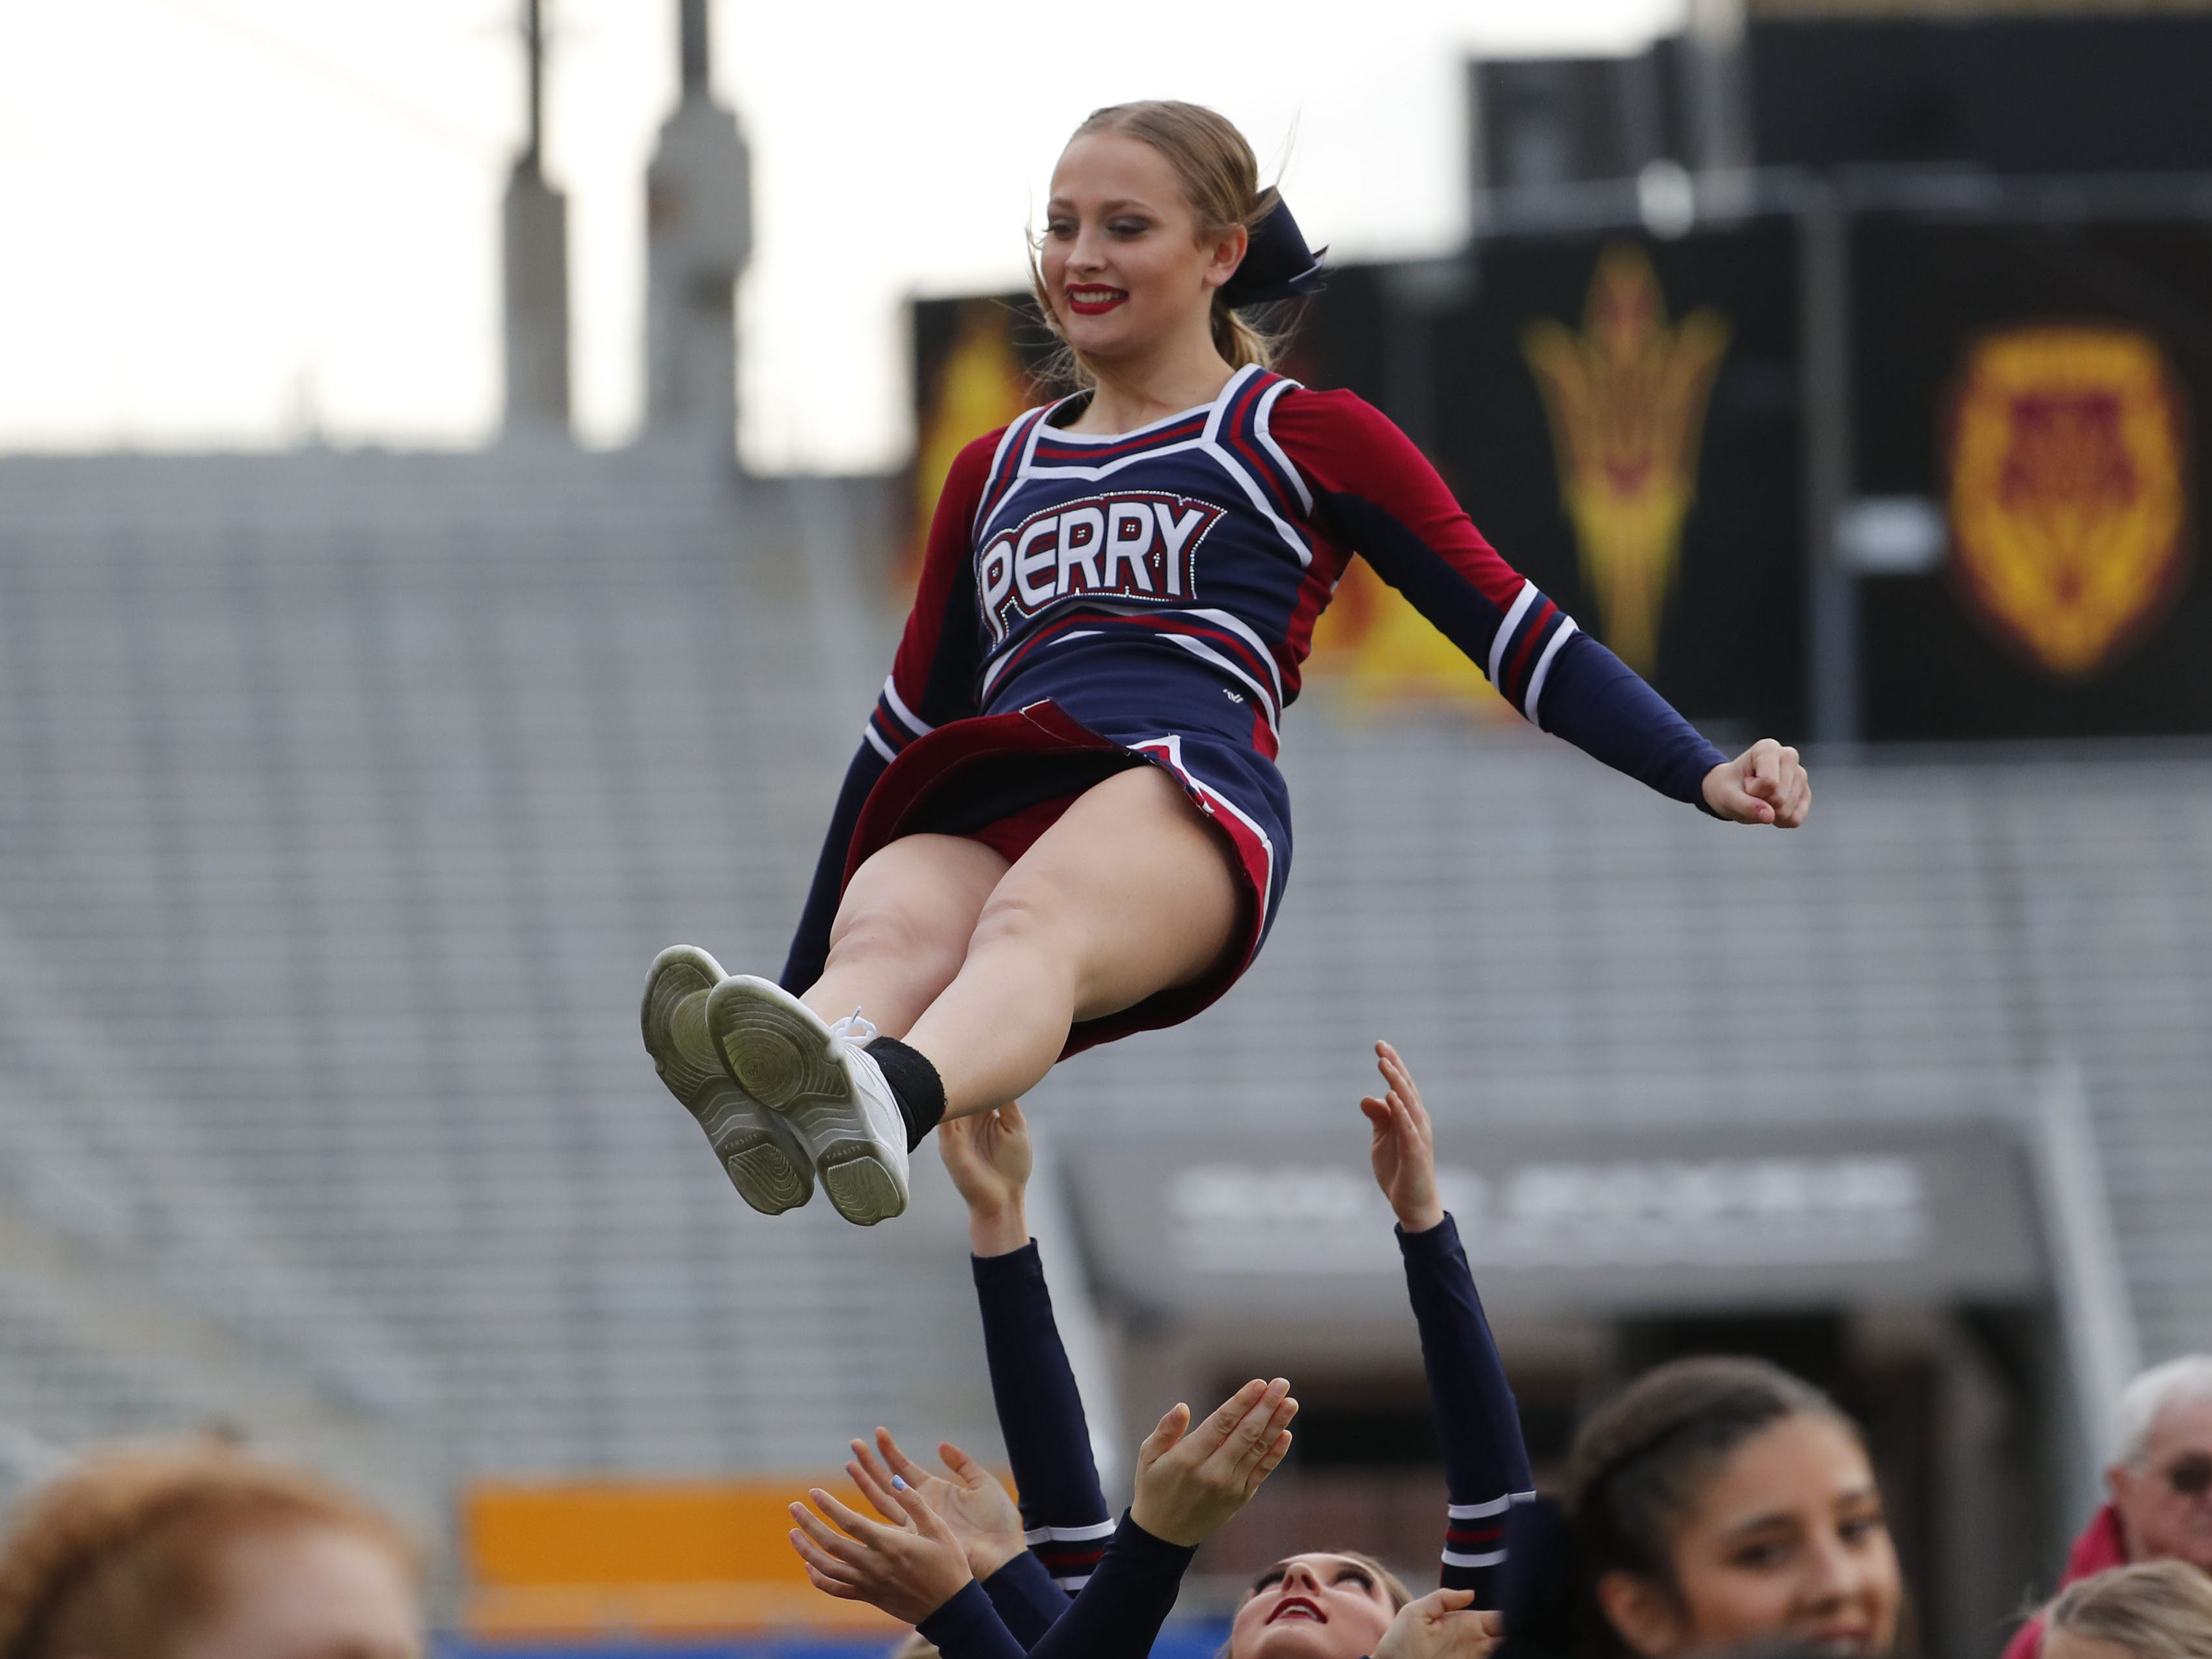 A Perry High cheerleader is tosses in the air during the 6A state football championship game against Chandler at Sun Devil Stadium December 1, 2018. #azhsfb